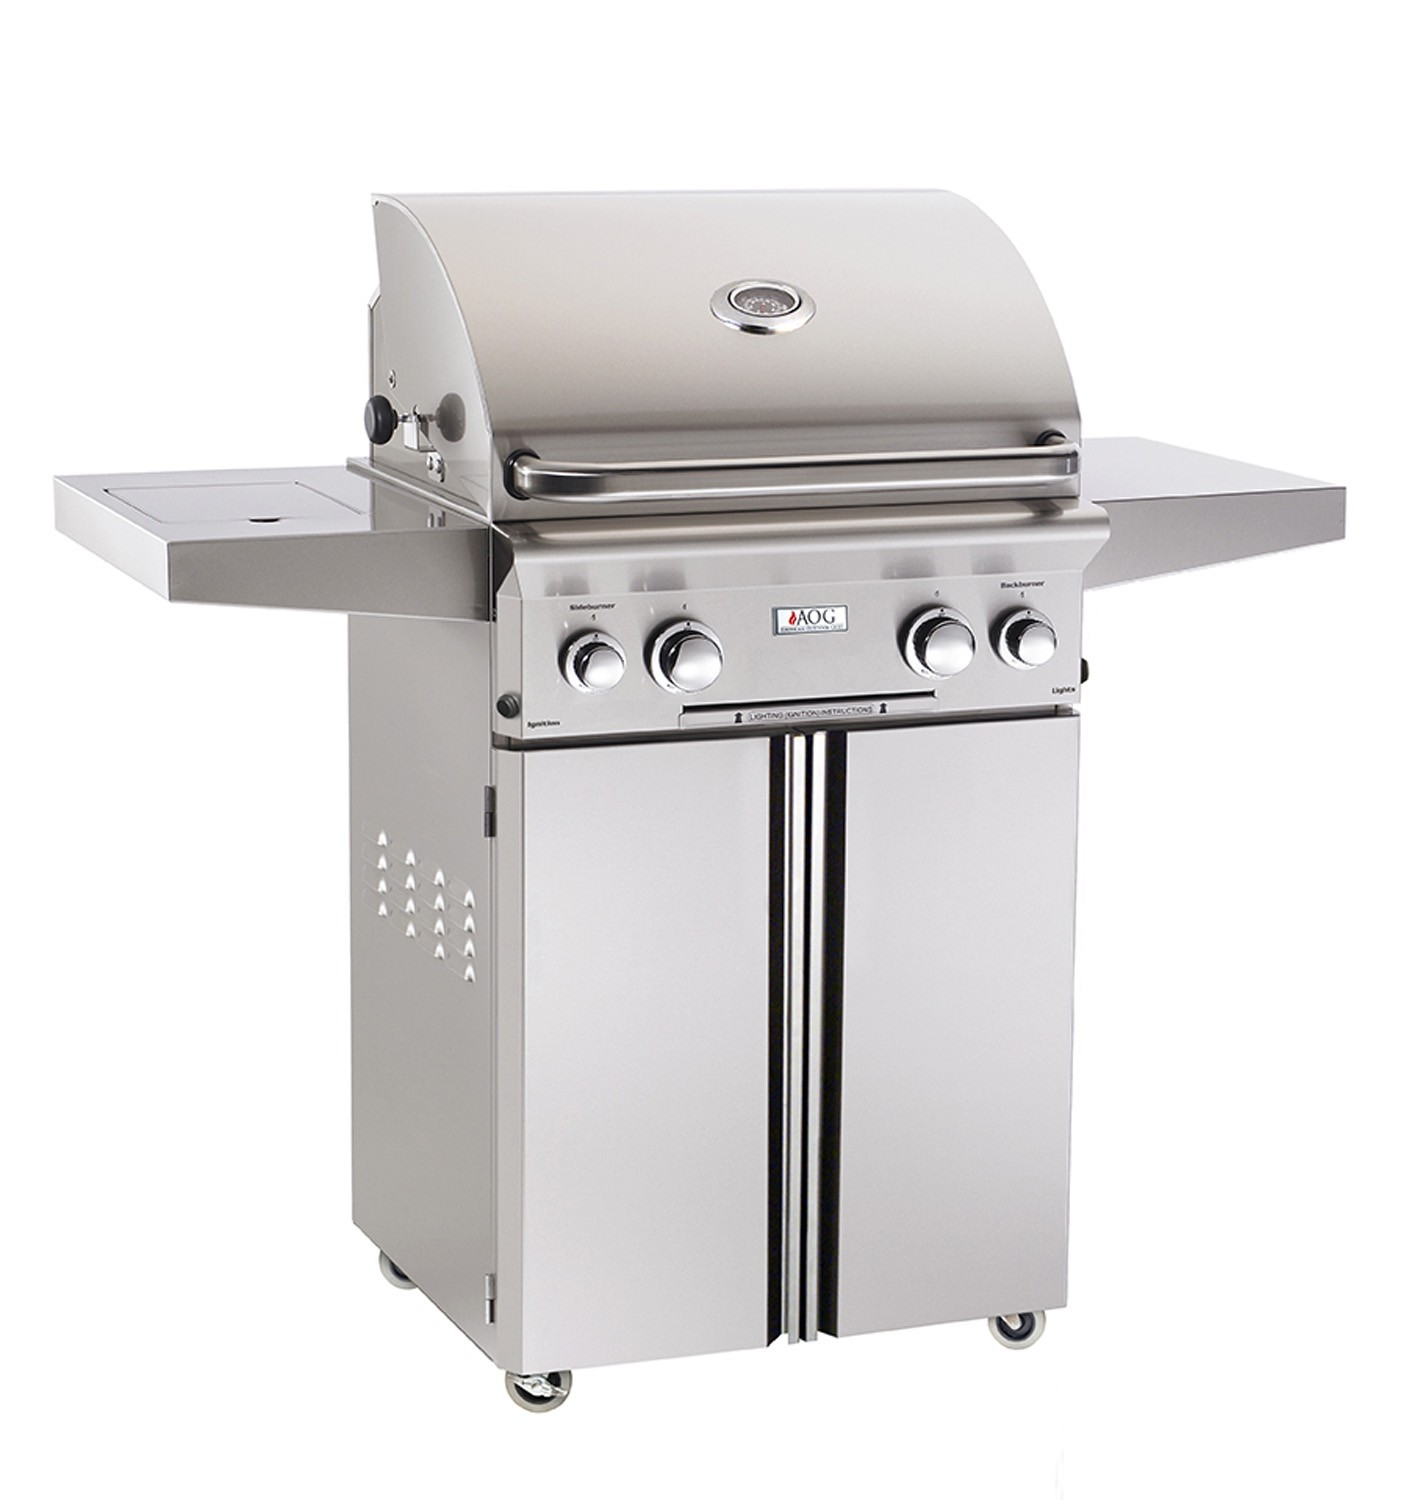 Grill 24 American Outdoor Grill 24 Inch Natural Gas Grill On Cart W ...